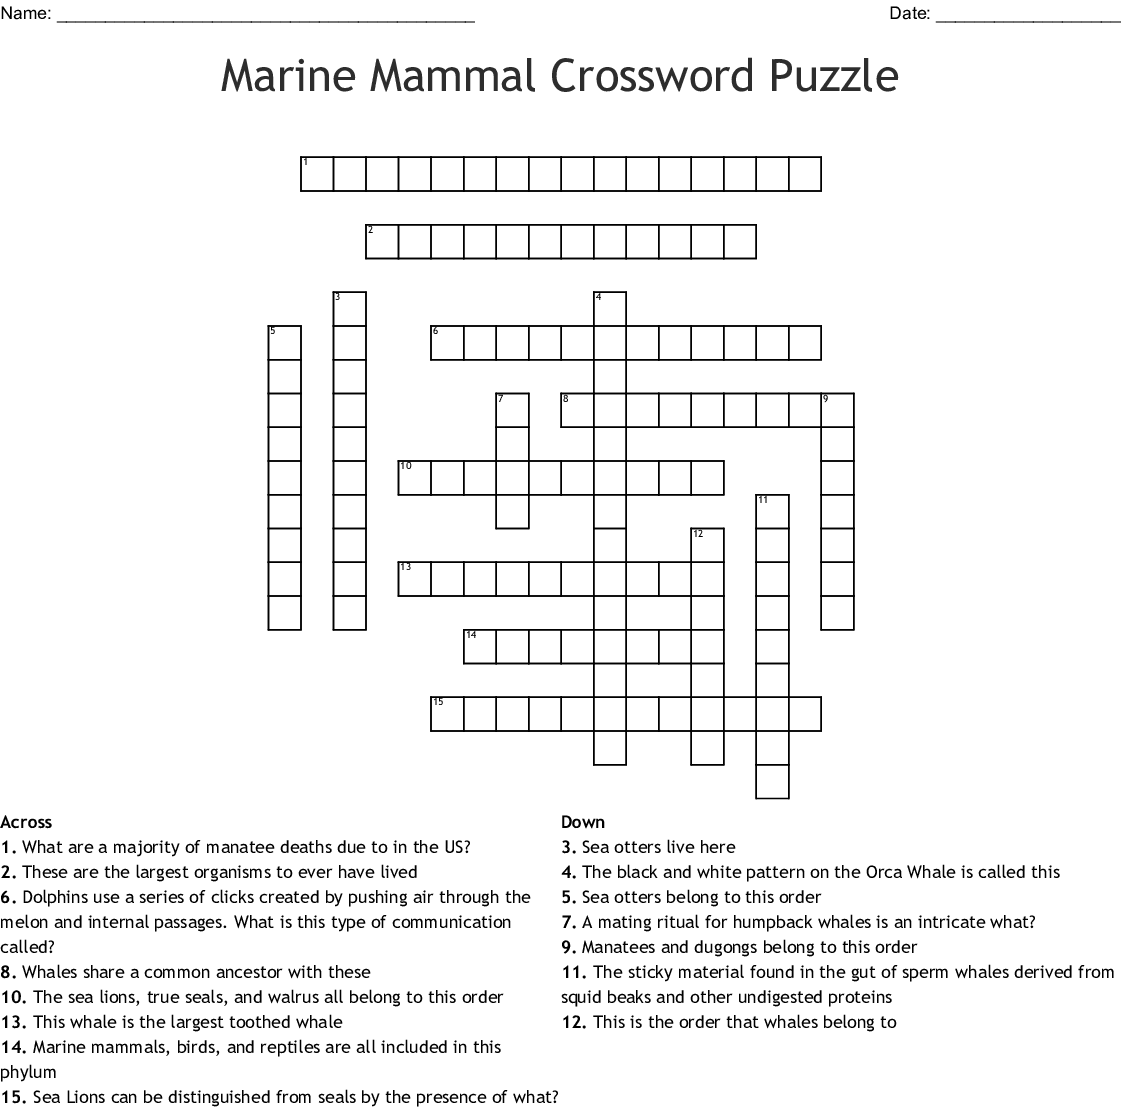 Aquatic Mammals Crossword